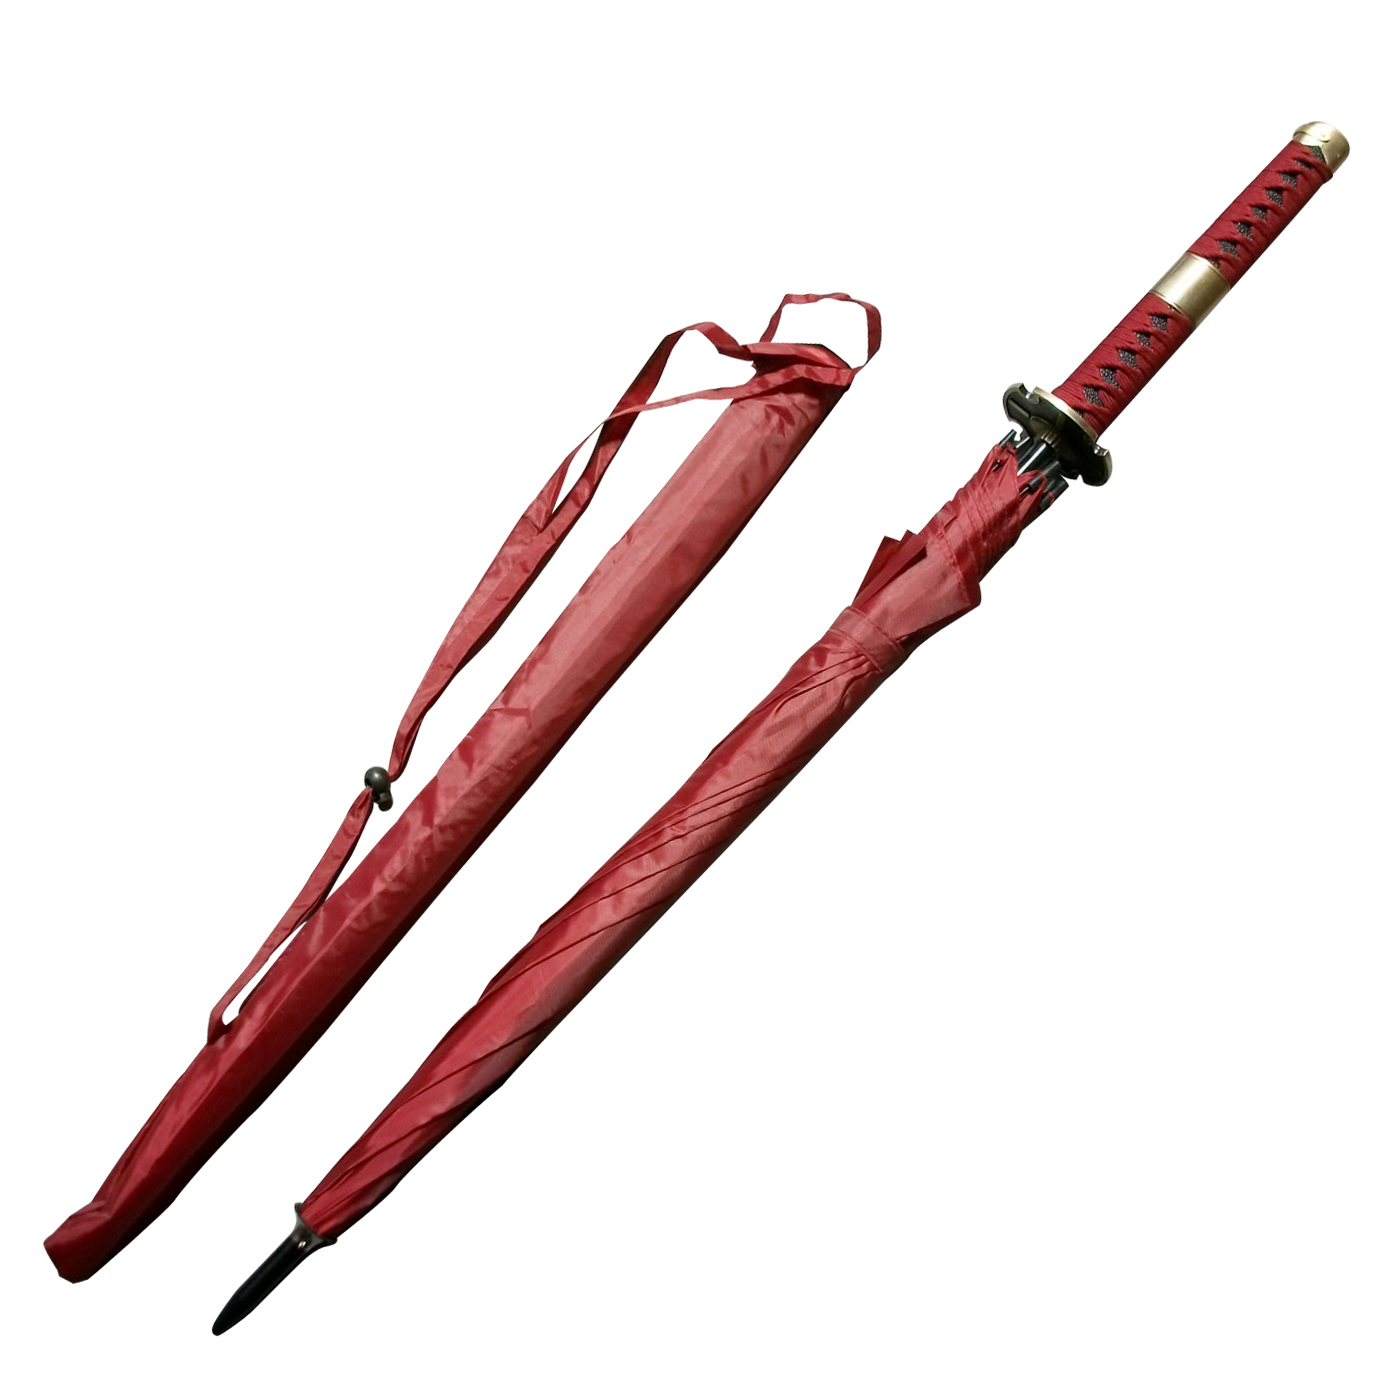 One Piece Roronoa Zoro Three Sword Style Red Anime Samurai Umbrella Sword